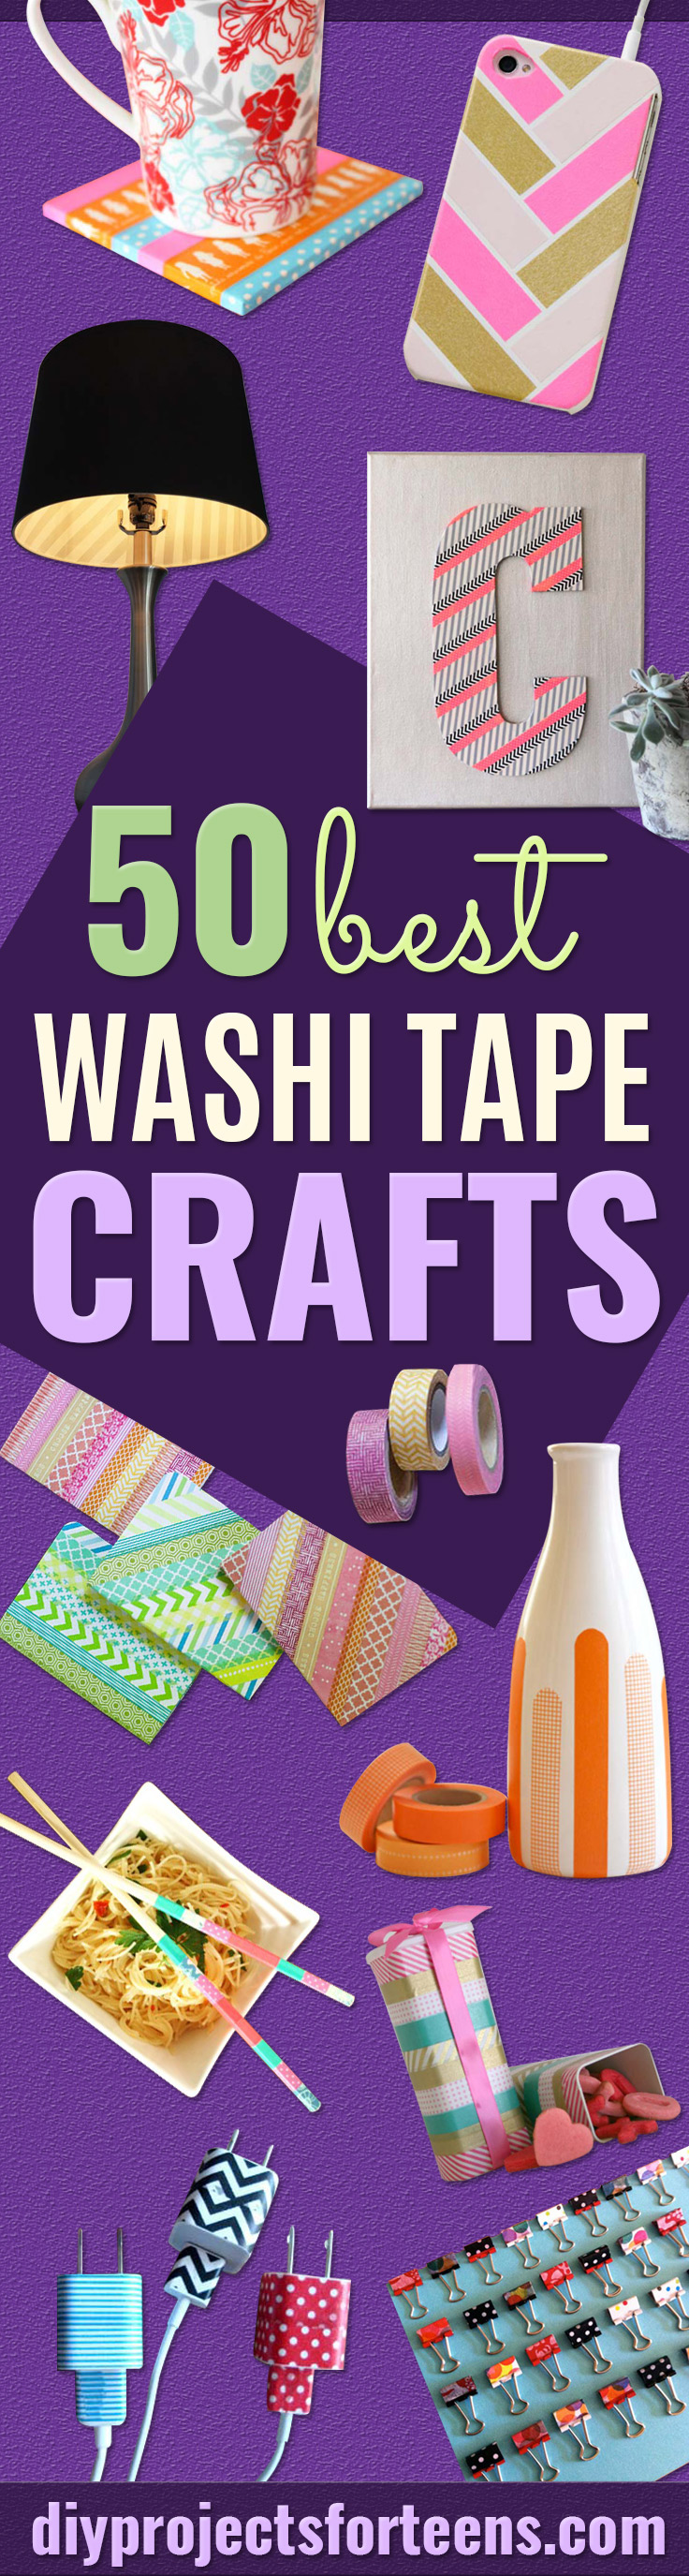 50-best-washi-tape-crafts-1